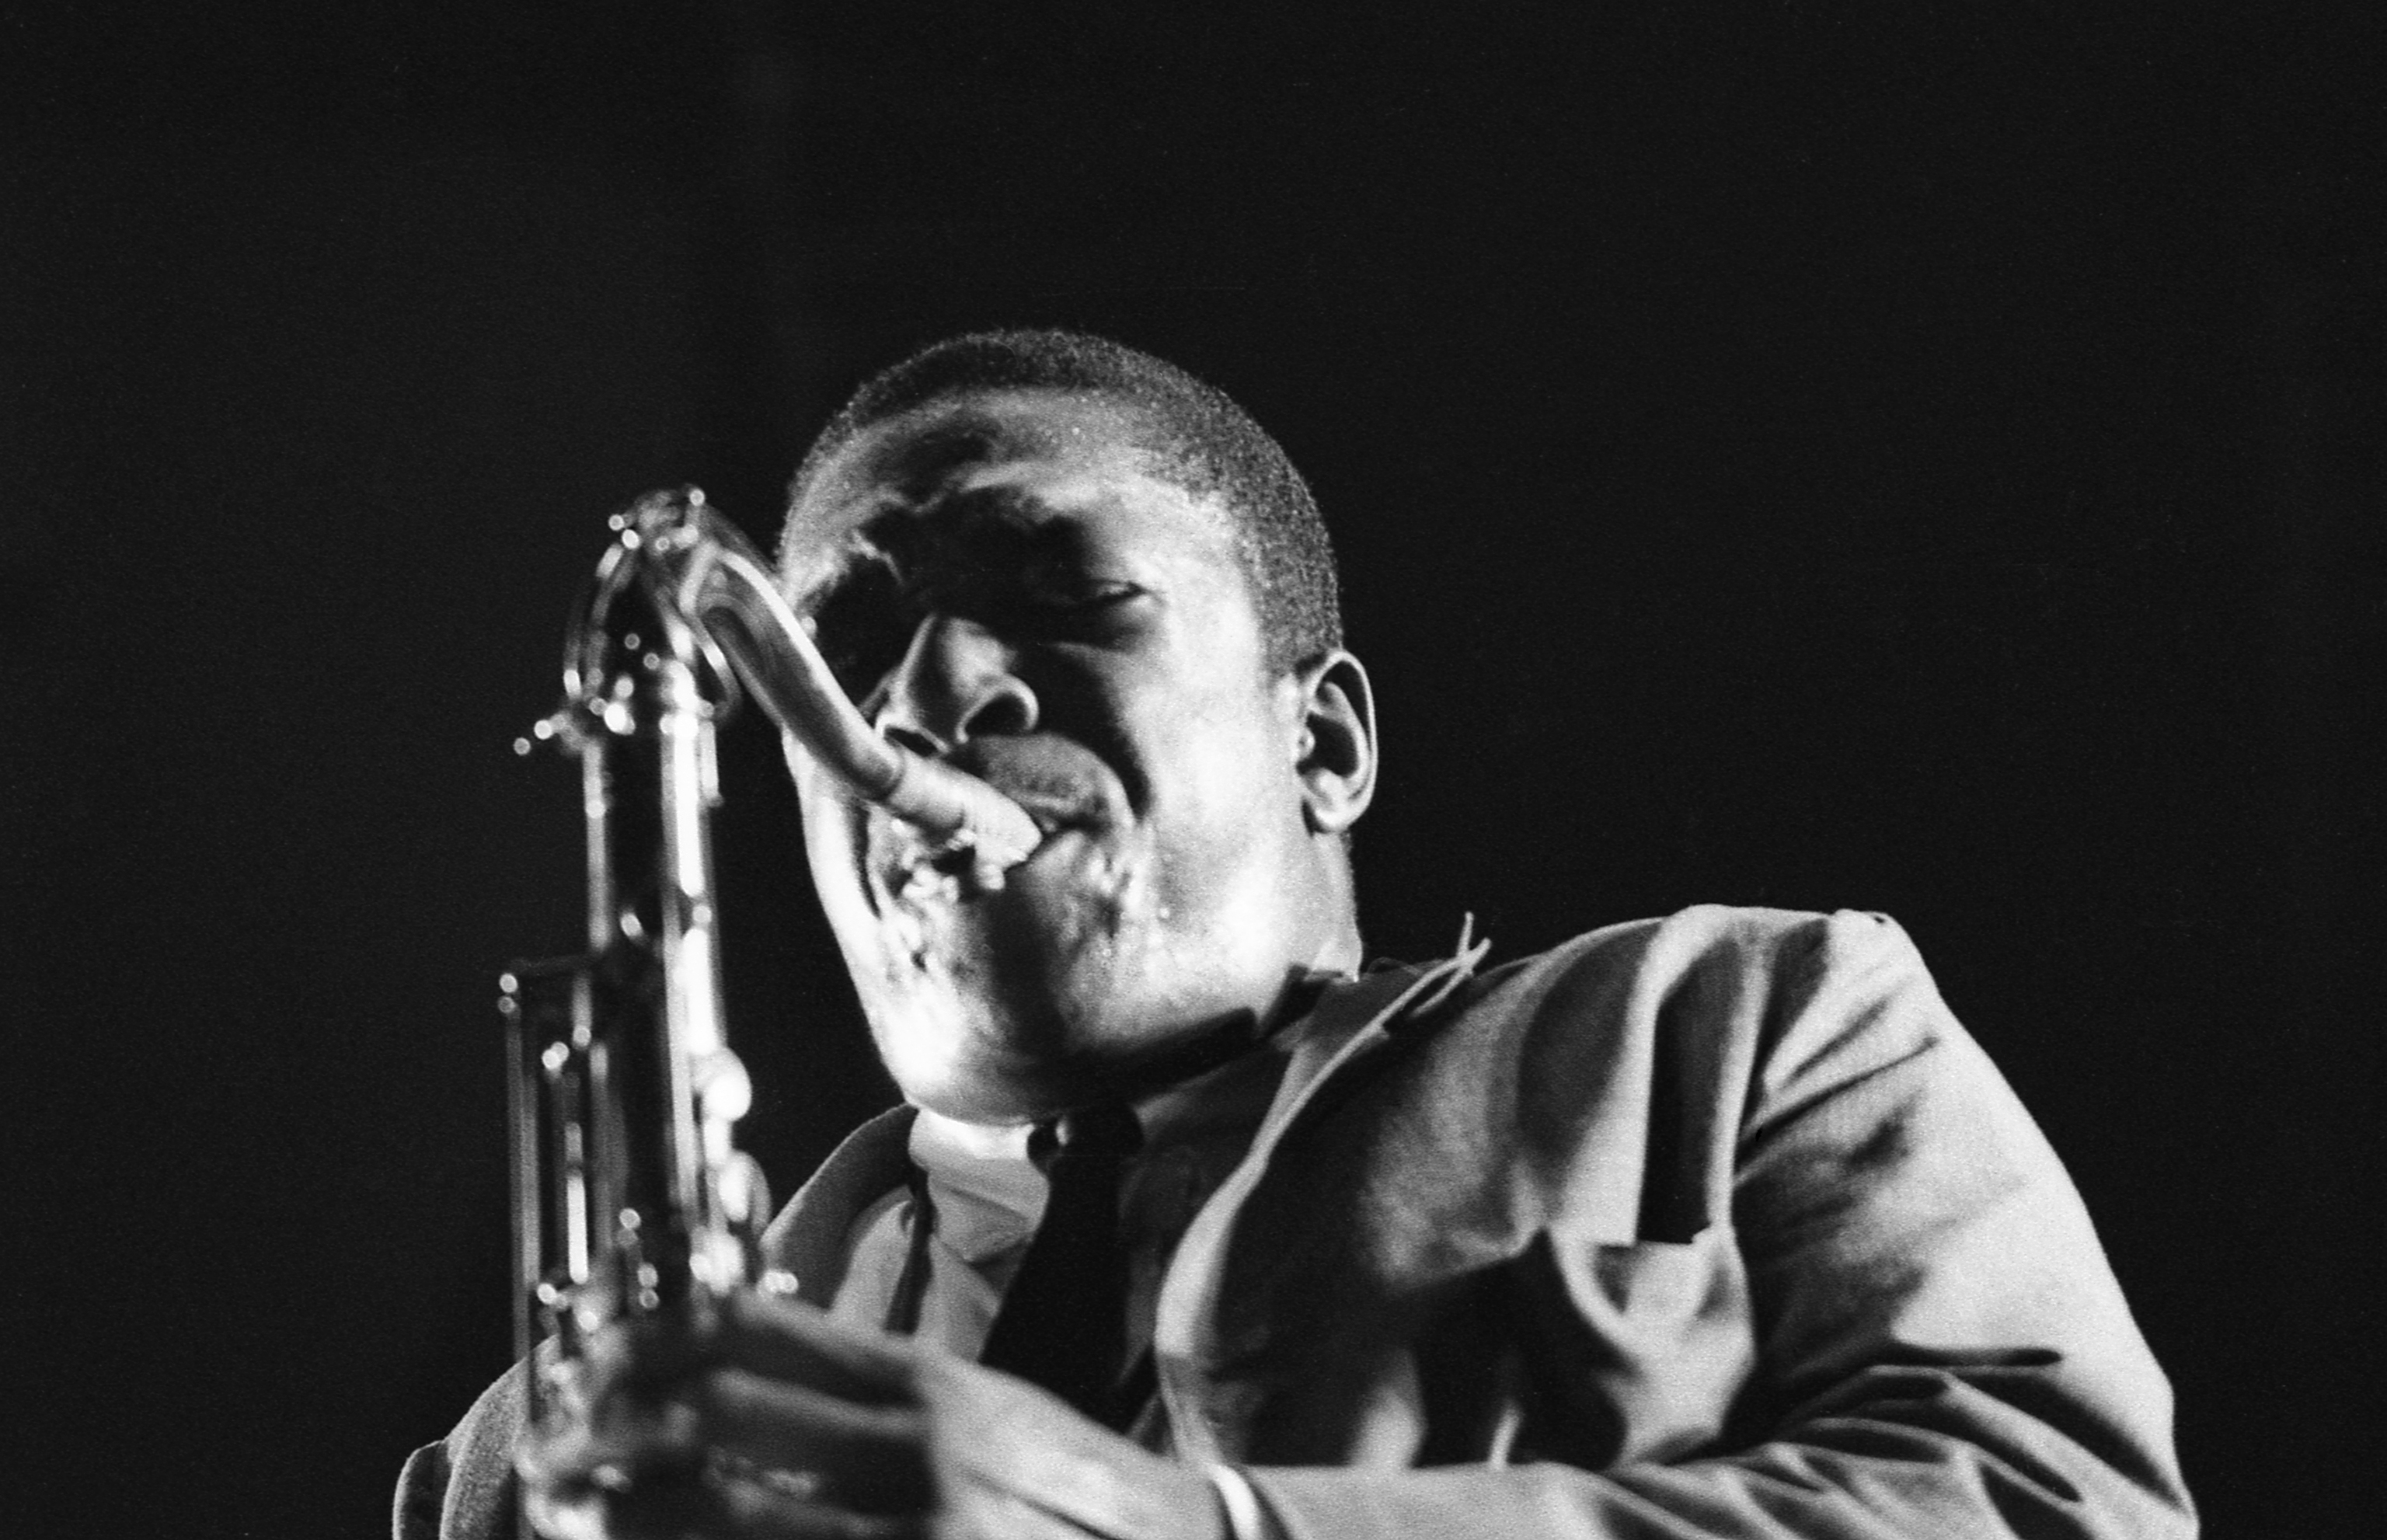 John Coltrane Photo By Don Schlitten, featured in CHASING TRANE The John Coltrane Documentary, by director John Scheinfeld